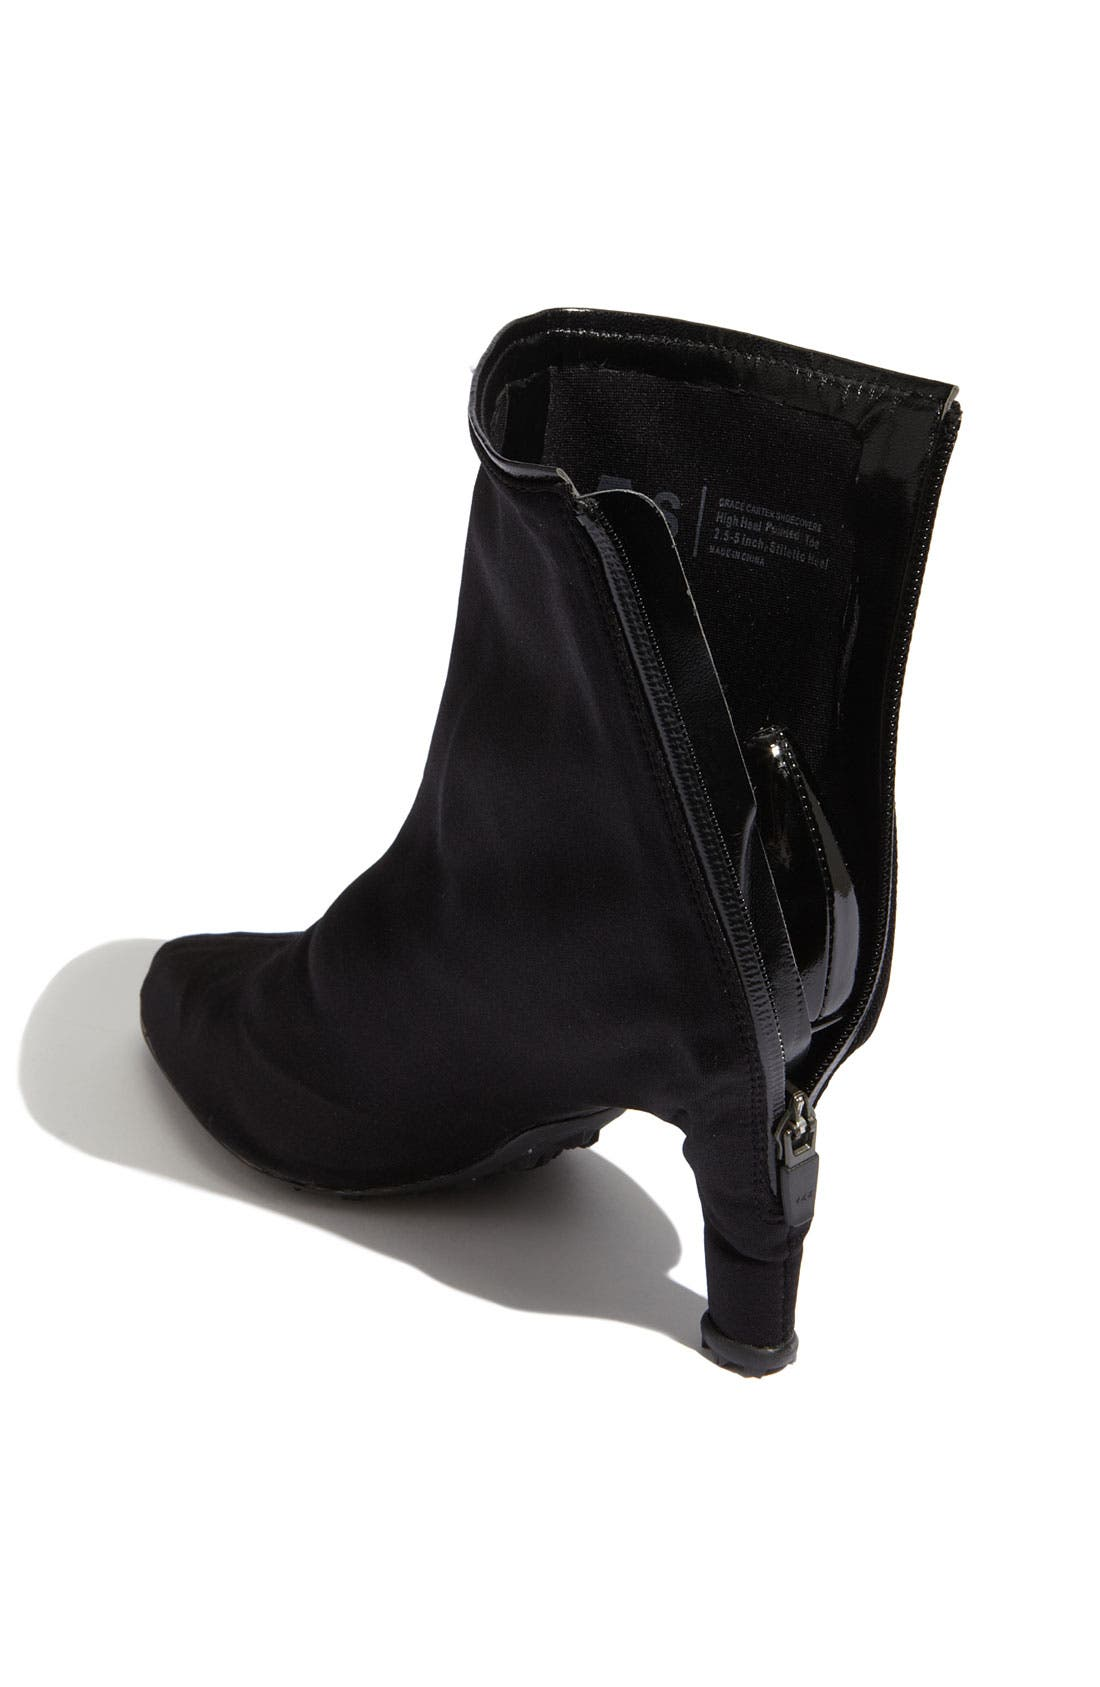 Alternate Image 2  - Grace Carter 'High Pointy' Shoe Cover